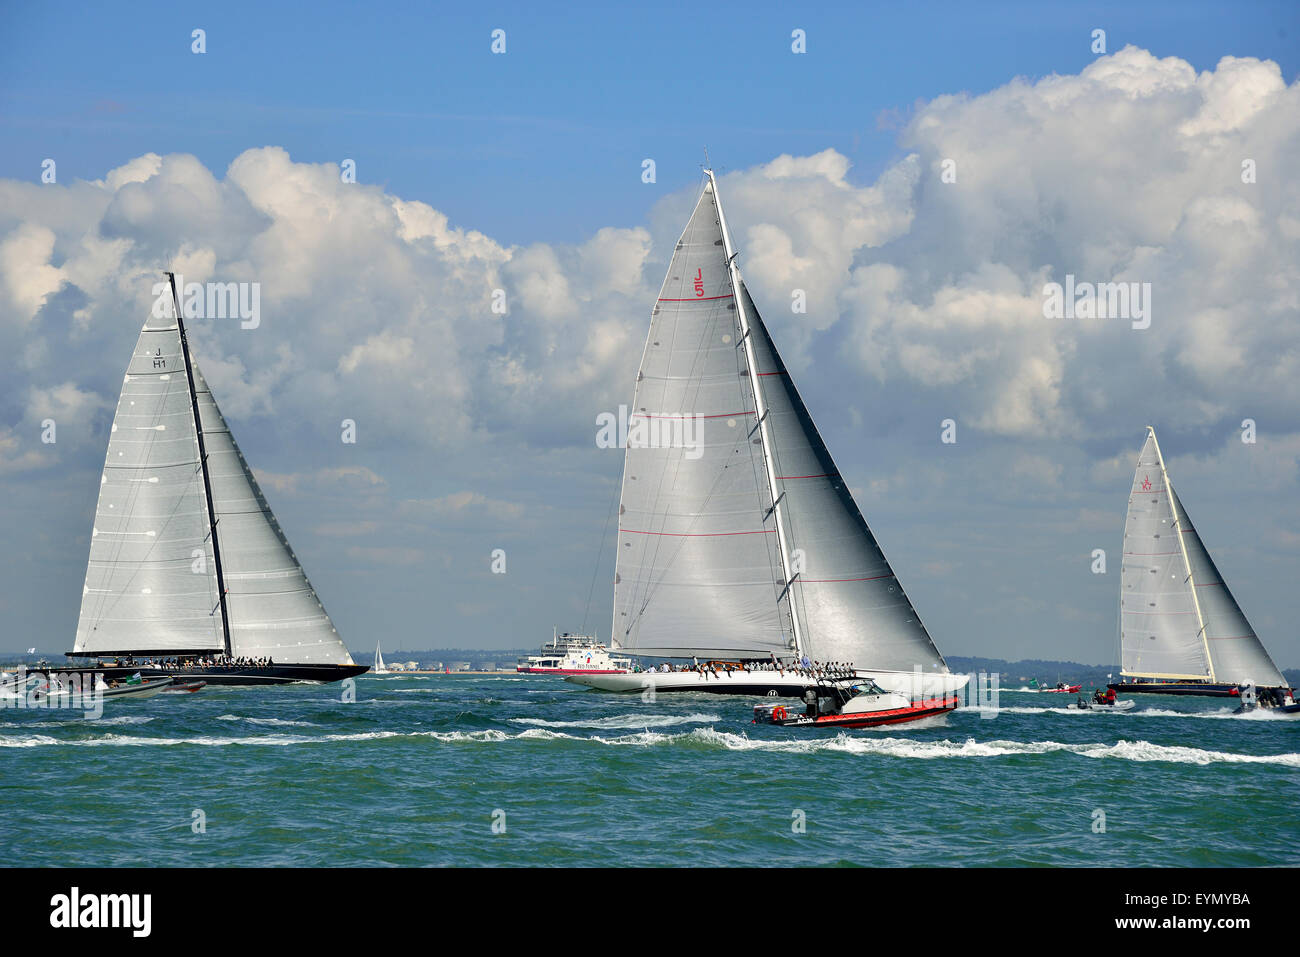 Cowes, Isle of Wight, UK. 31 July, 2015. The three J-Class yachts race across the Solent on the final day of racing Stock Photo